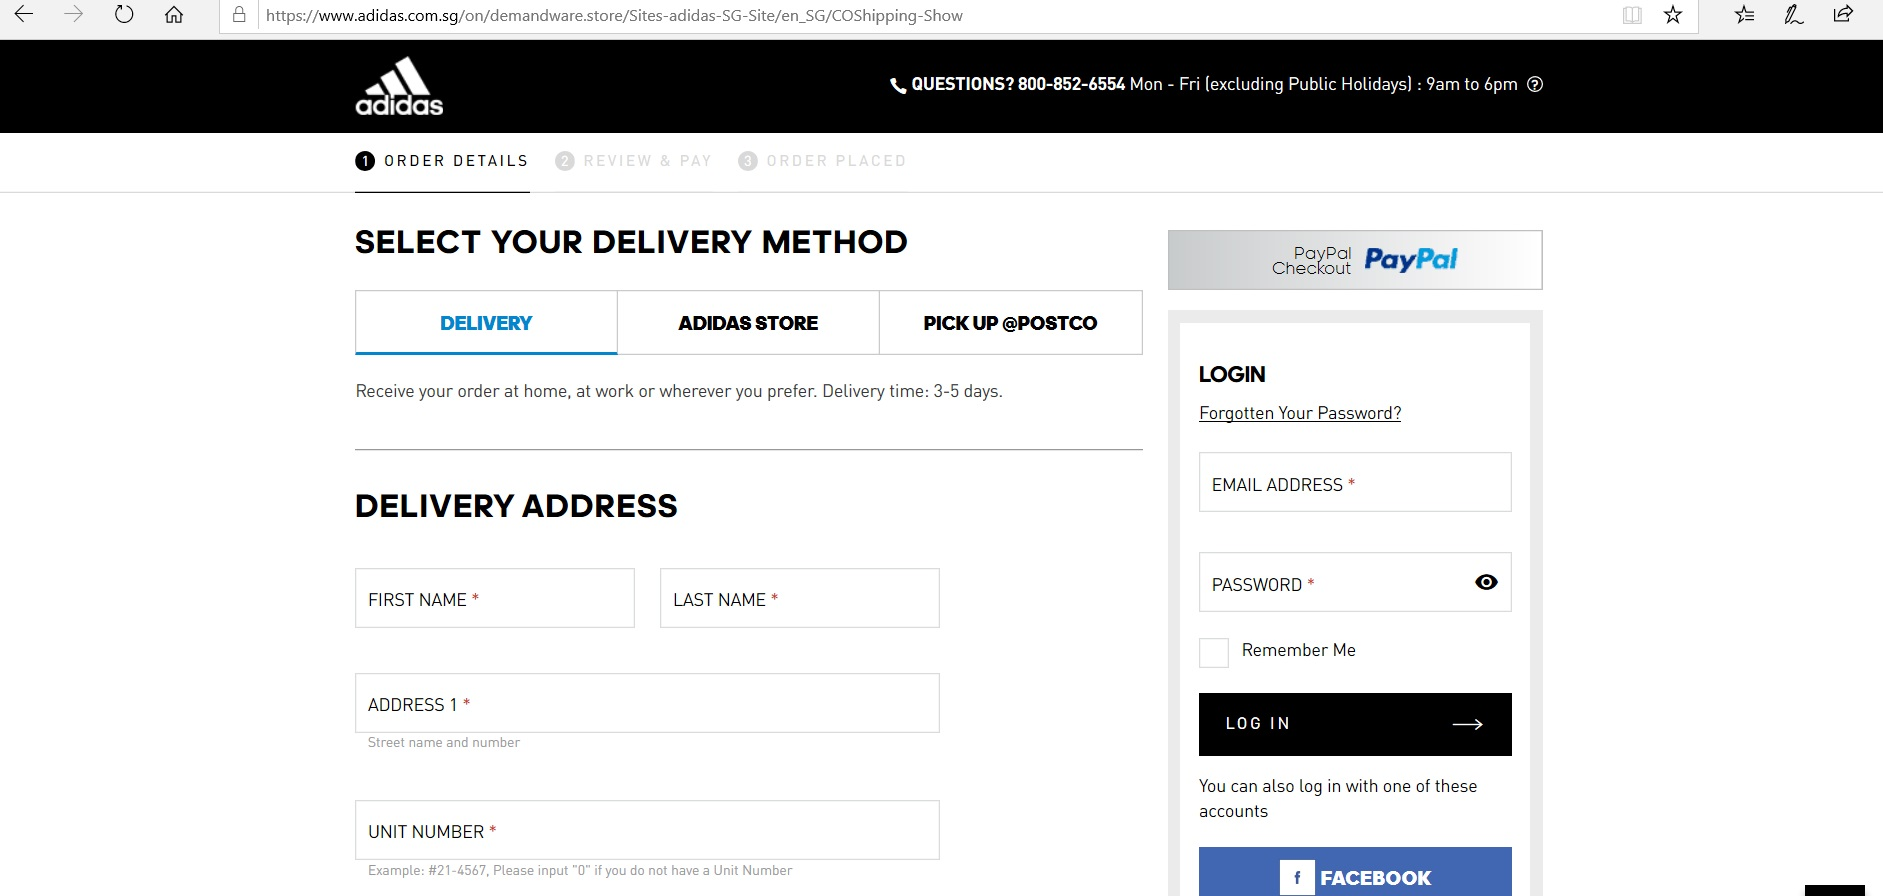 Form to choose delivery method and enter delivery address.